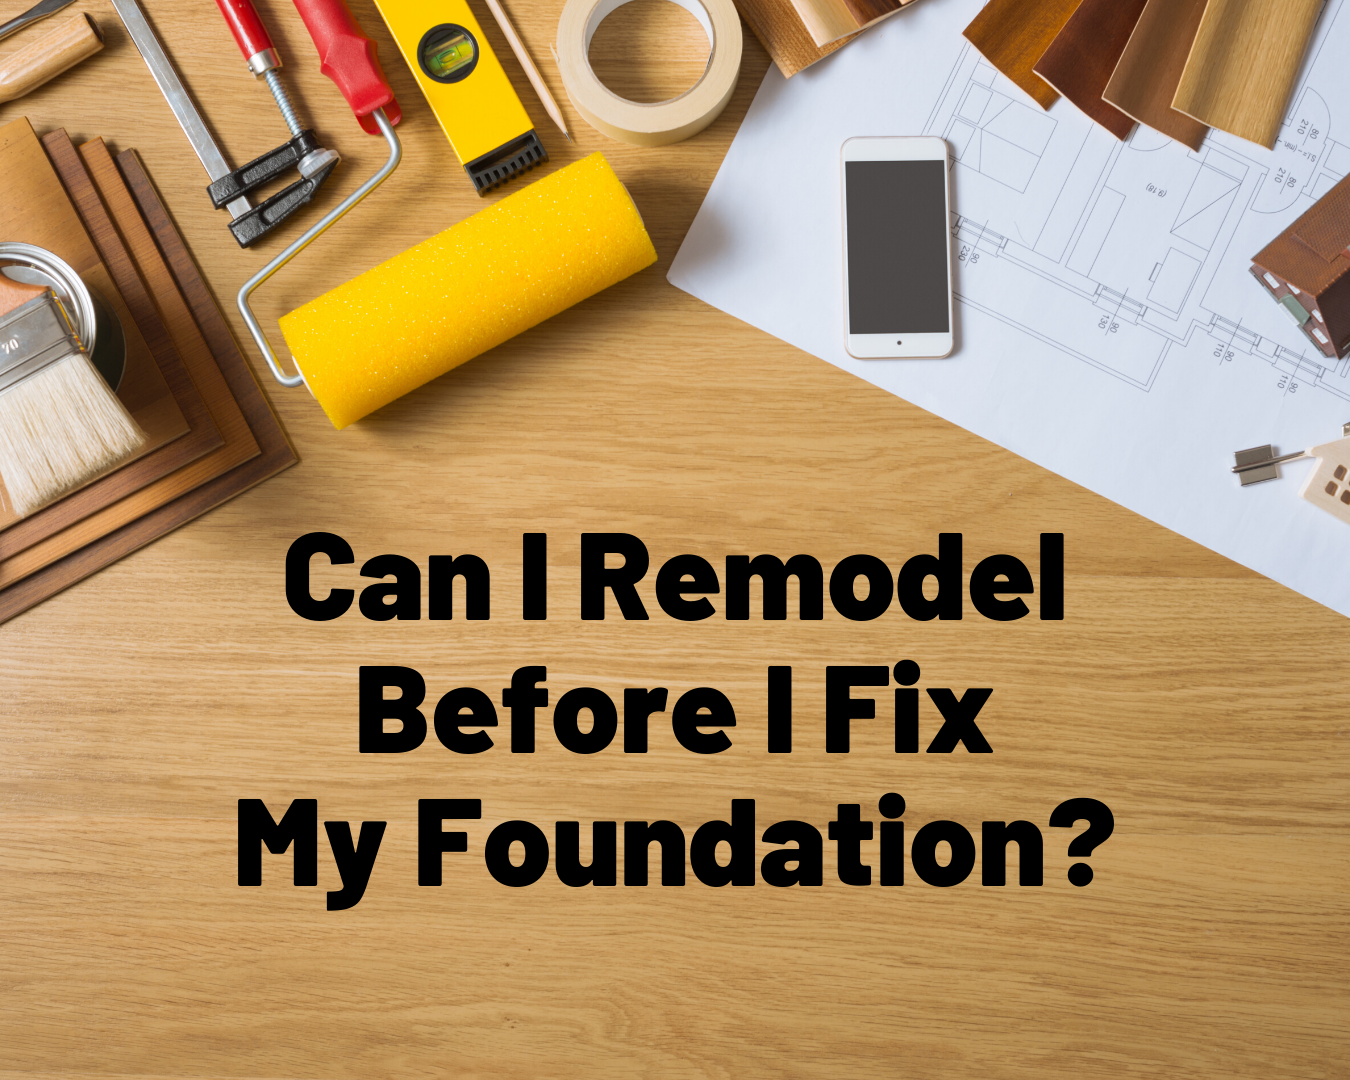 Can I Remodel Before I Fix My Foundation?